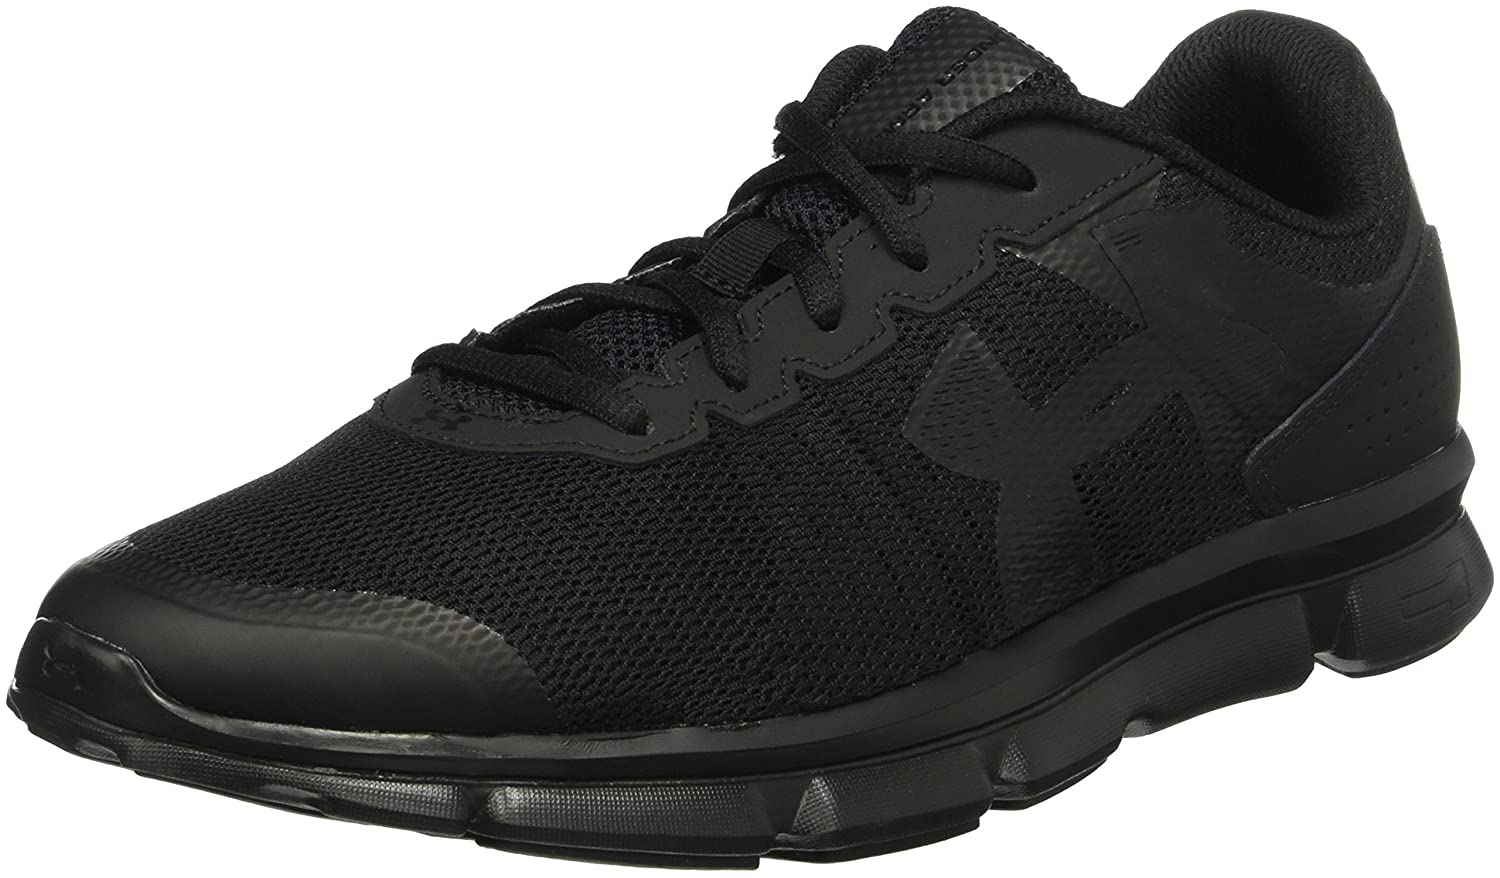 173afa2f Under Armour Mens UA Micro G Speed Swift Running Shoes 9 Black